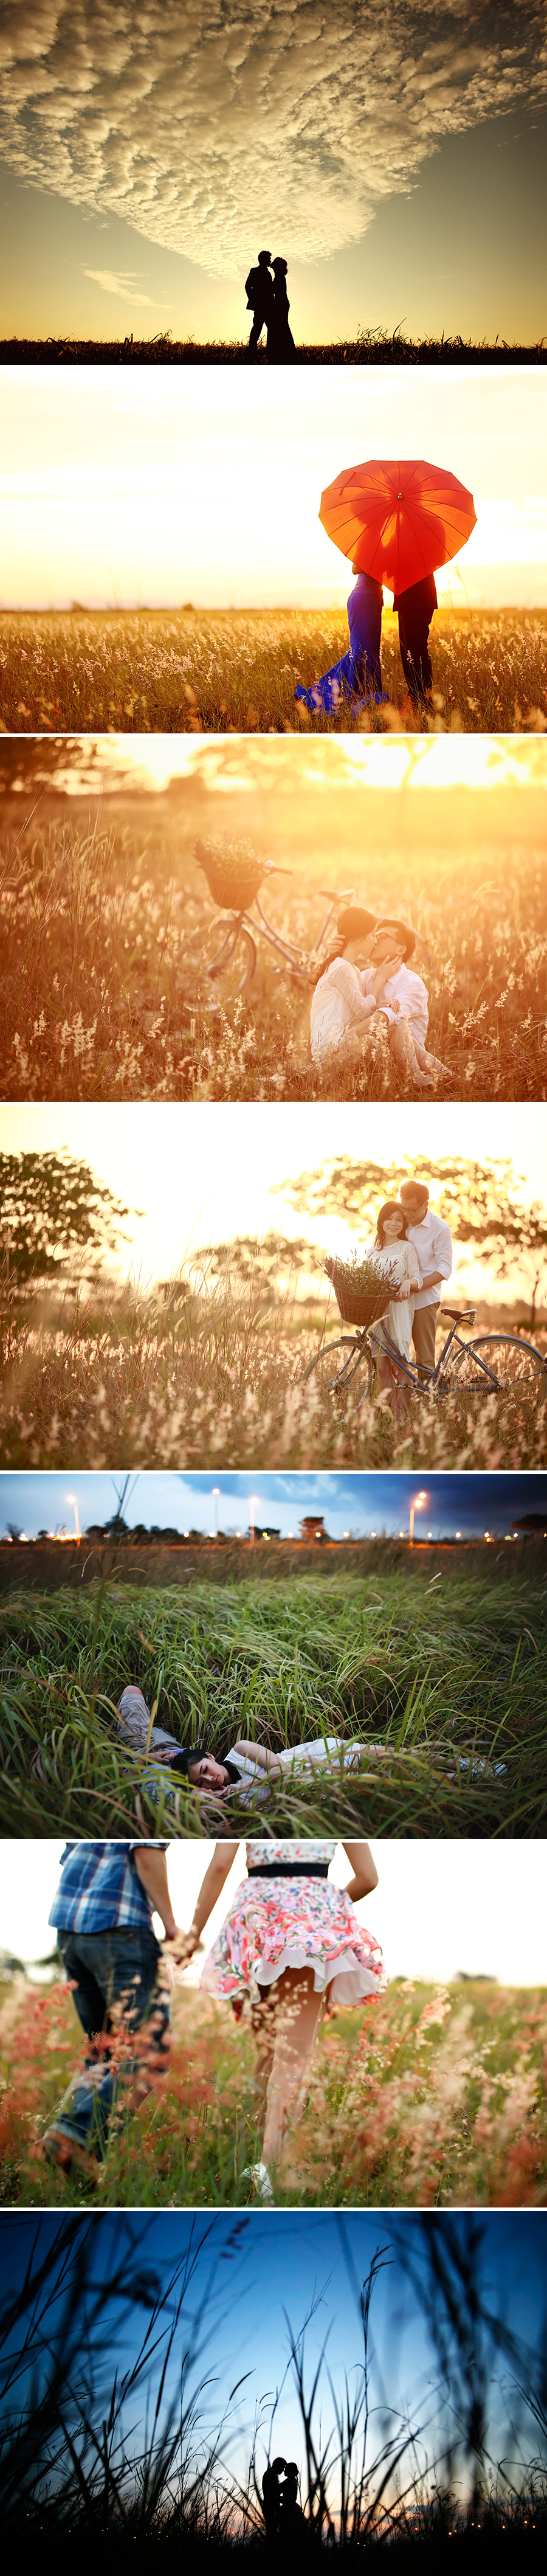 pre wedding photoshoot location malaysia%0A Not Just a PingFan Wedding     Wedding pictures ideas   Pinterest   Wedding  photoshoot  Wedding pictures and Wedding